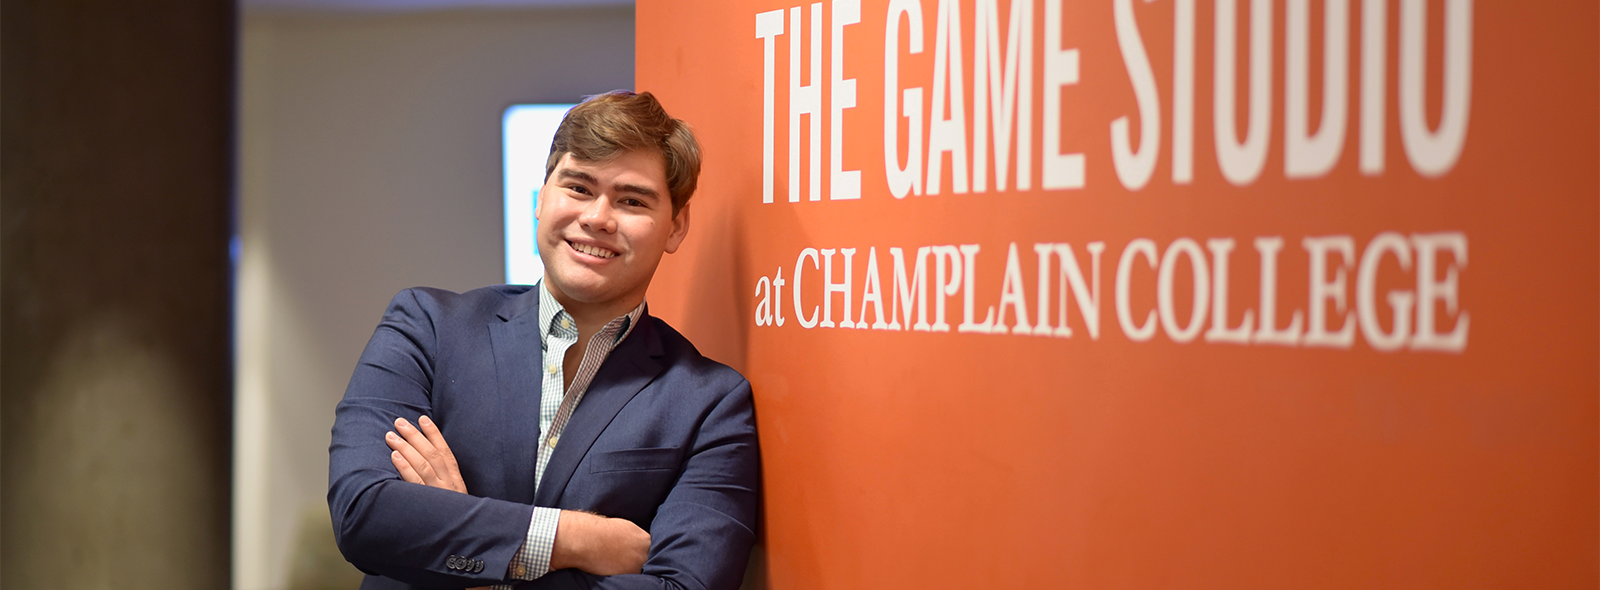 Smiling student in a suit leaning on an orange wall